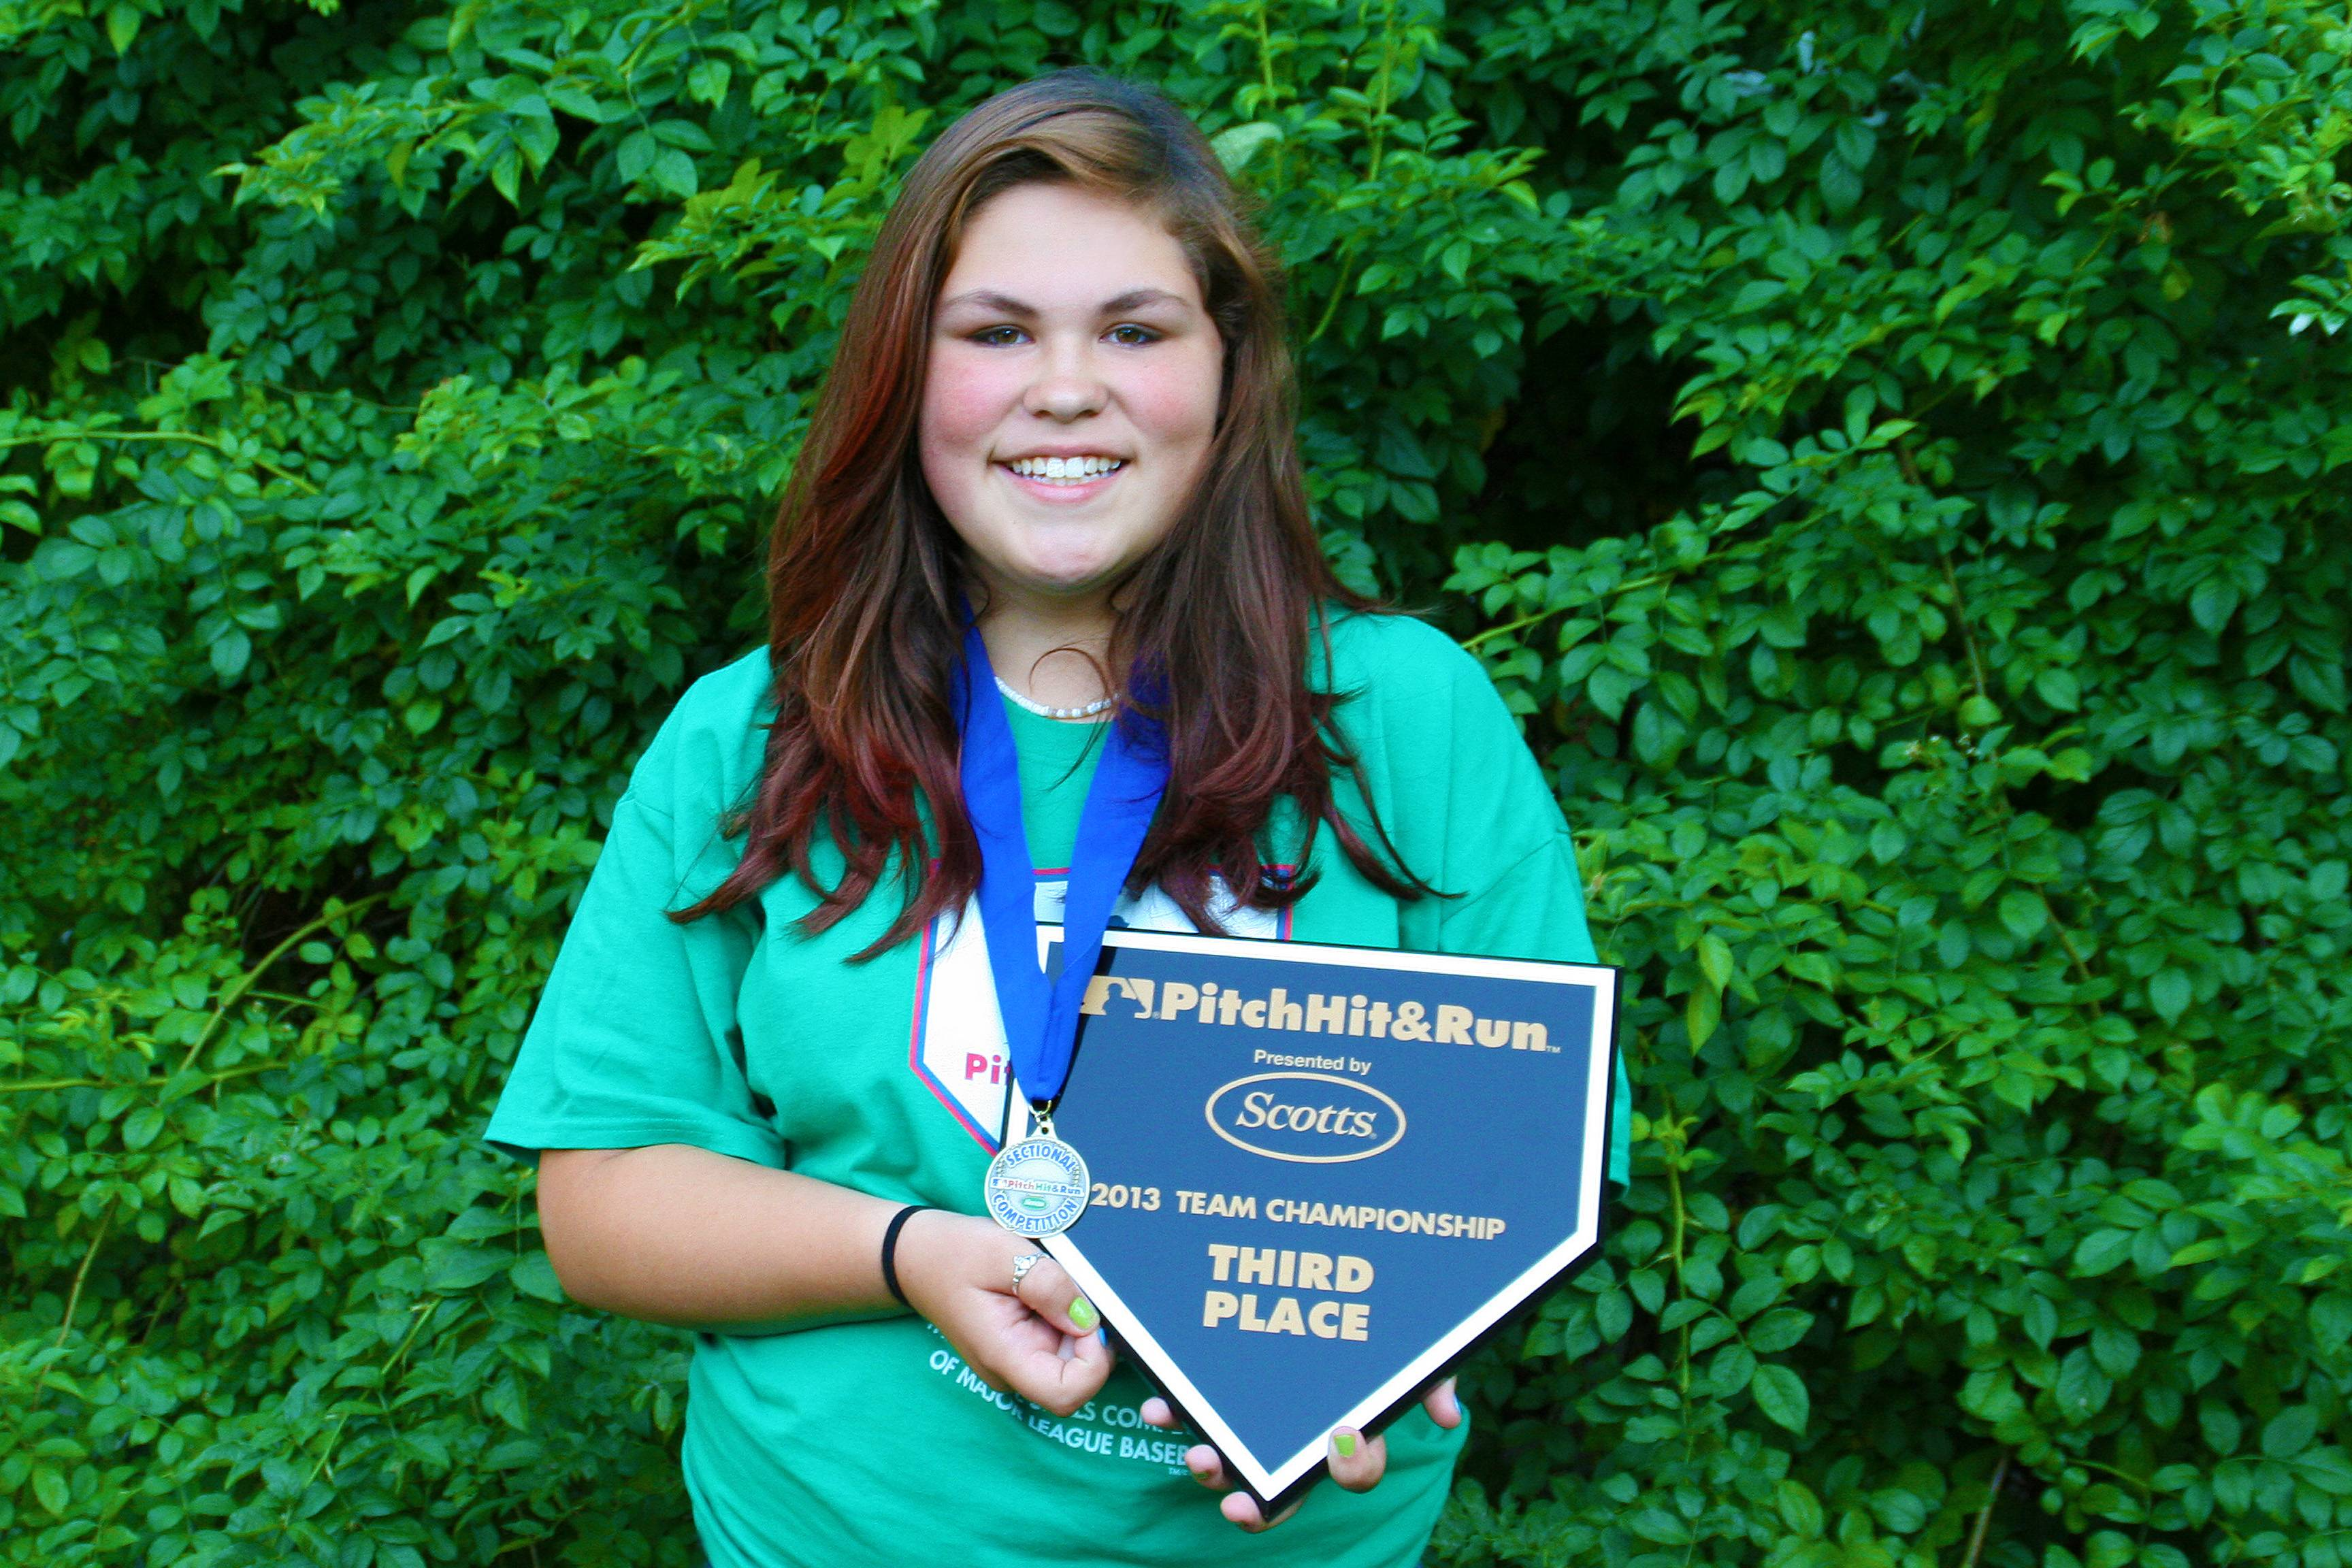 Maren Garnett, 12, takes third place in her age group at the MLB Pitch, Hit & Run Team Championships on June 23.